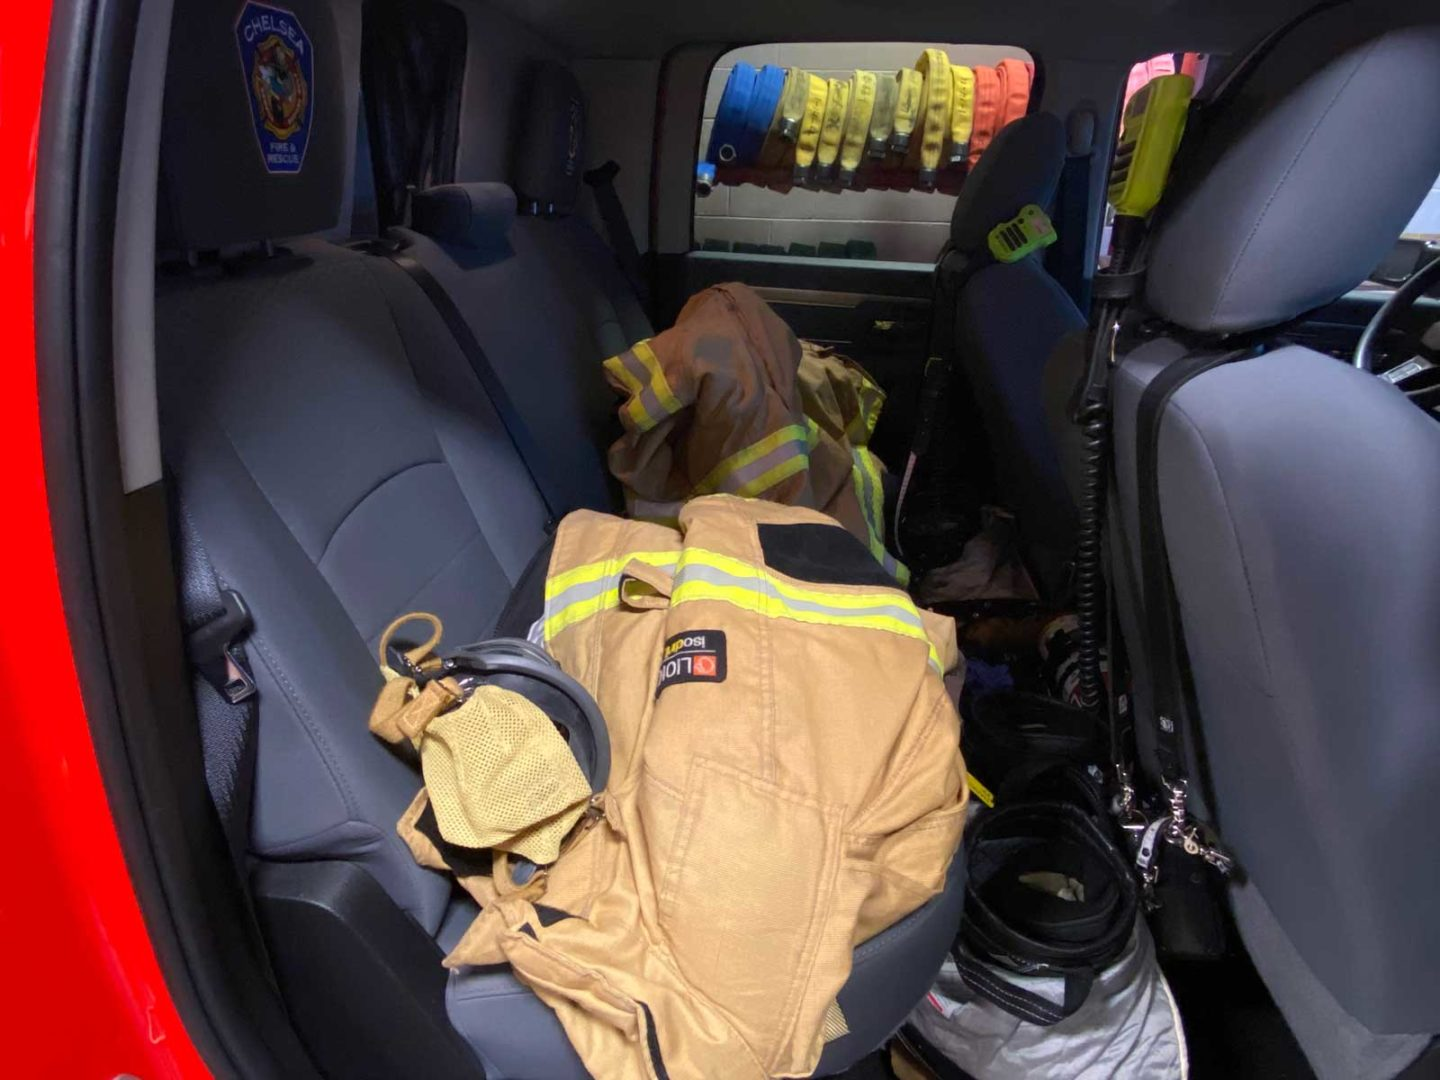 Firefighter PPE ion the seats of a fire truck